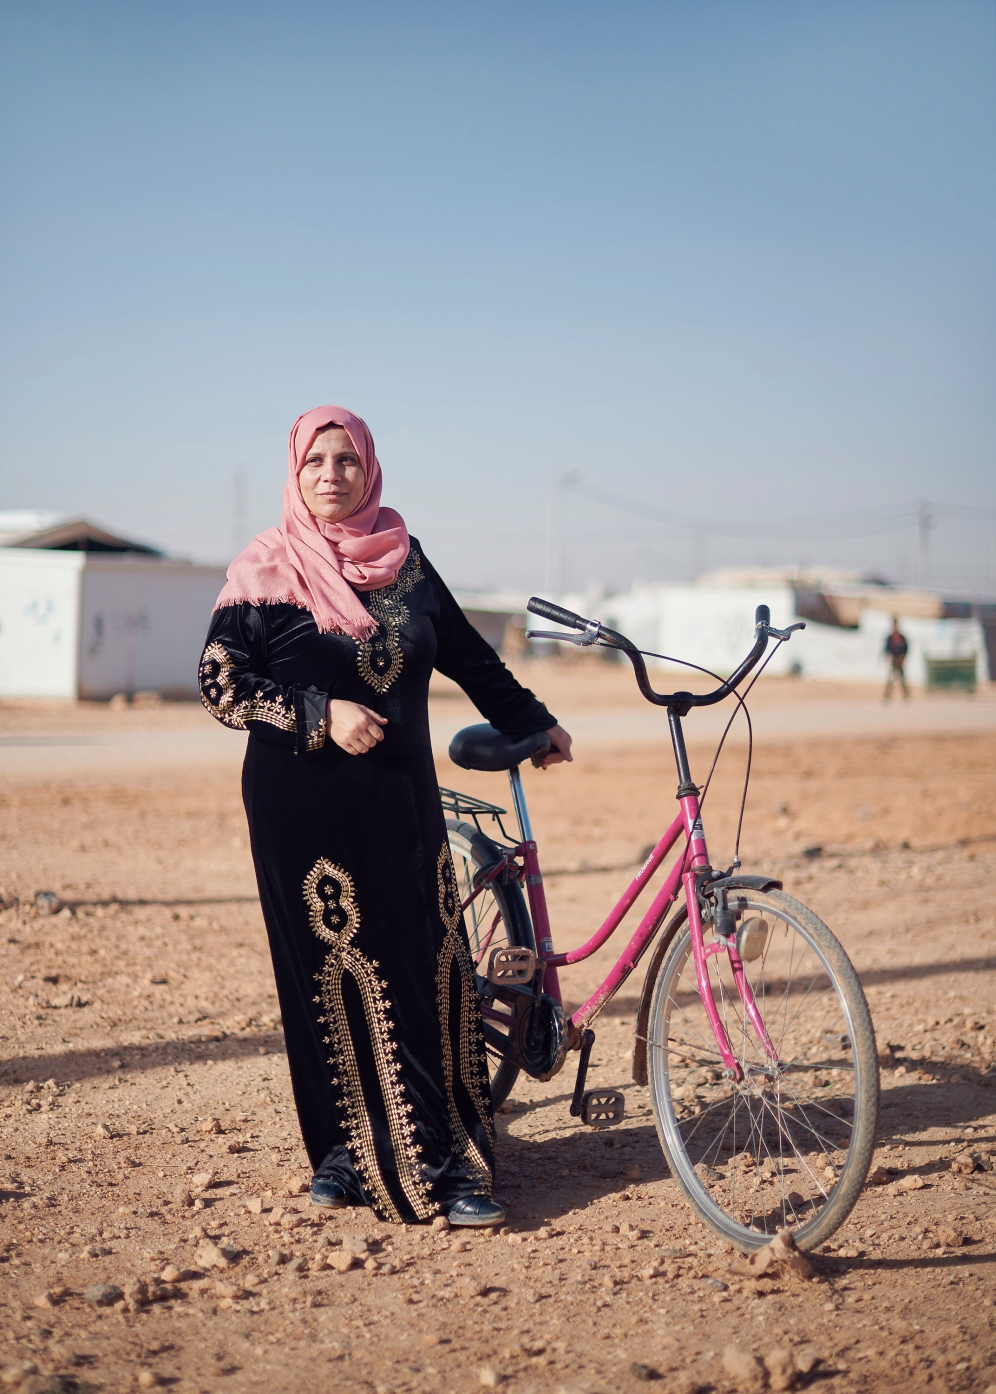 Syrian Refugee Story, Jordan with Oxfam